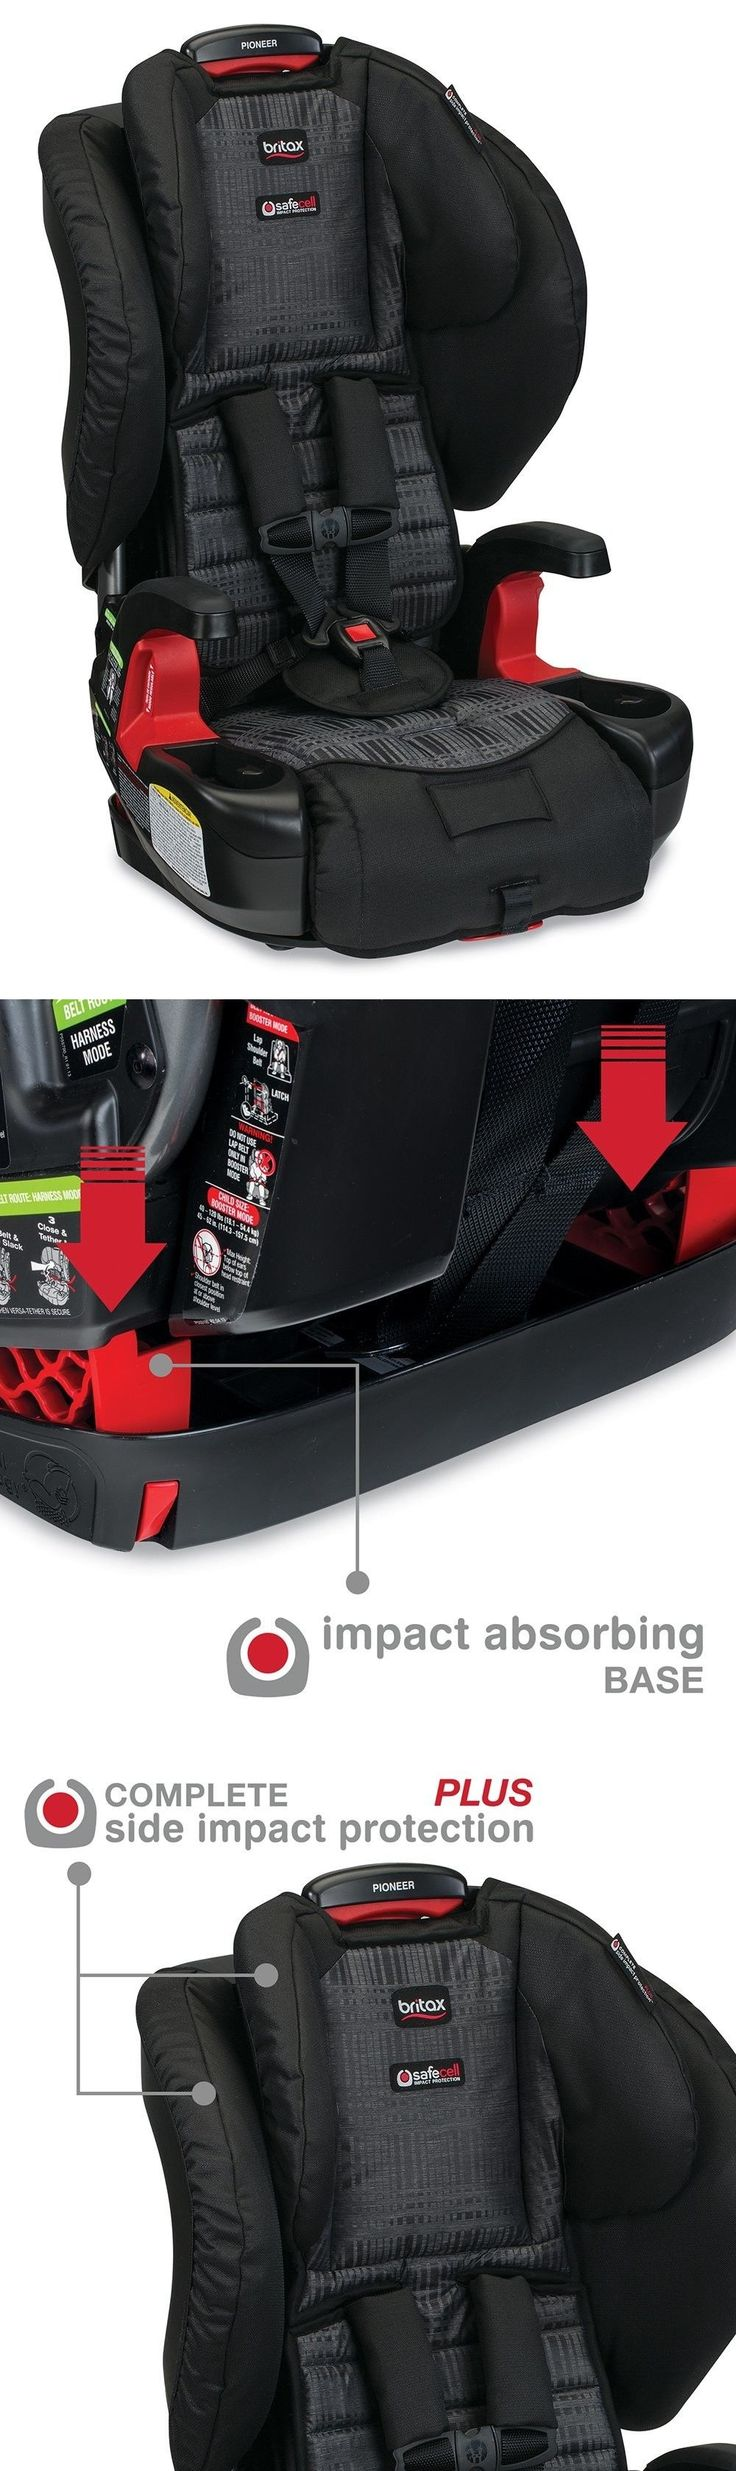 Booster to 80lbs 66694: Britax Pioneer Combination Harness -2- Booster Car Seat-Domino New -> BUY IT NOW ONLY: $180.96 on eBay!